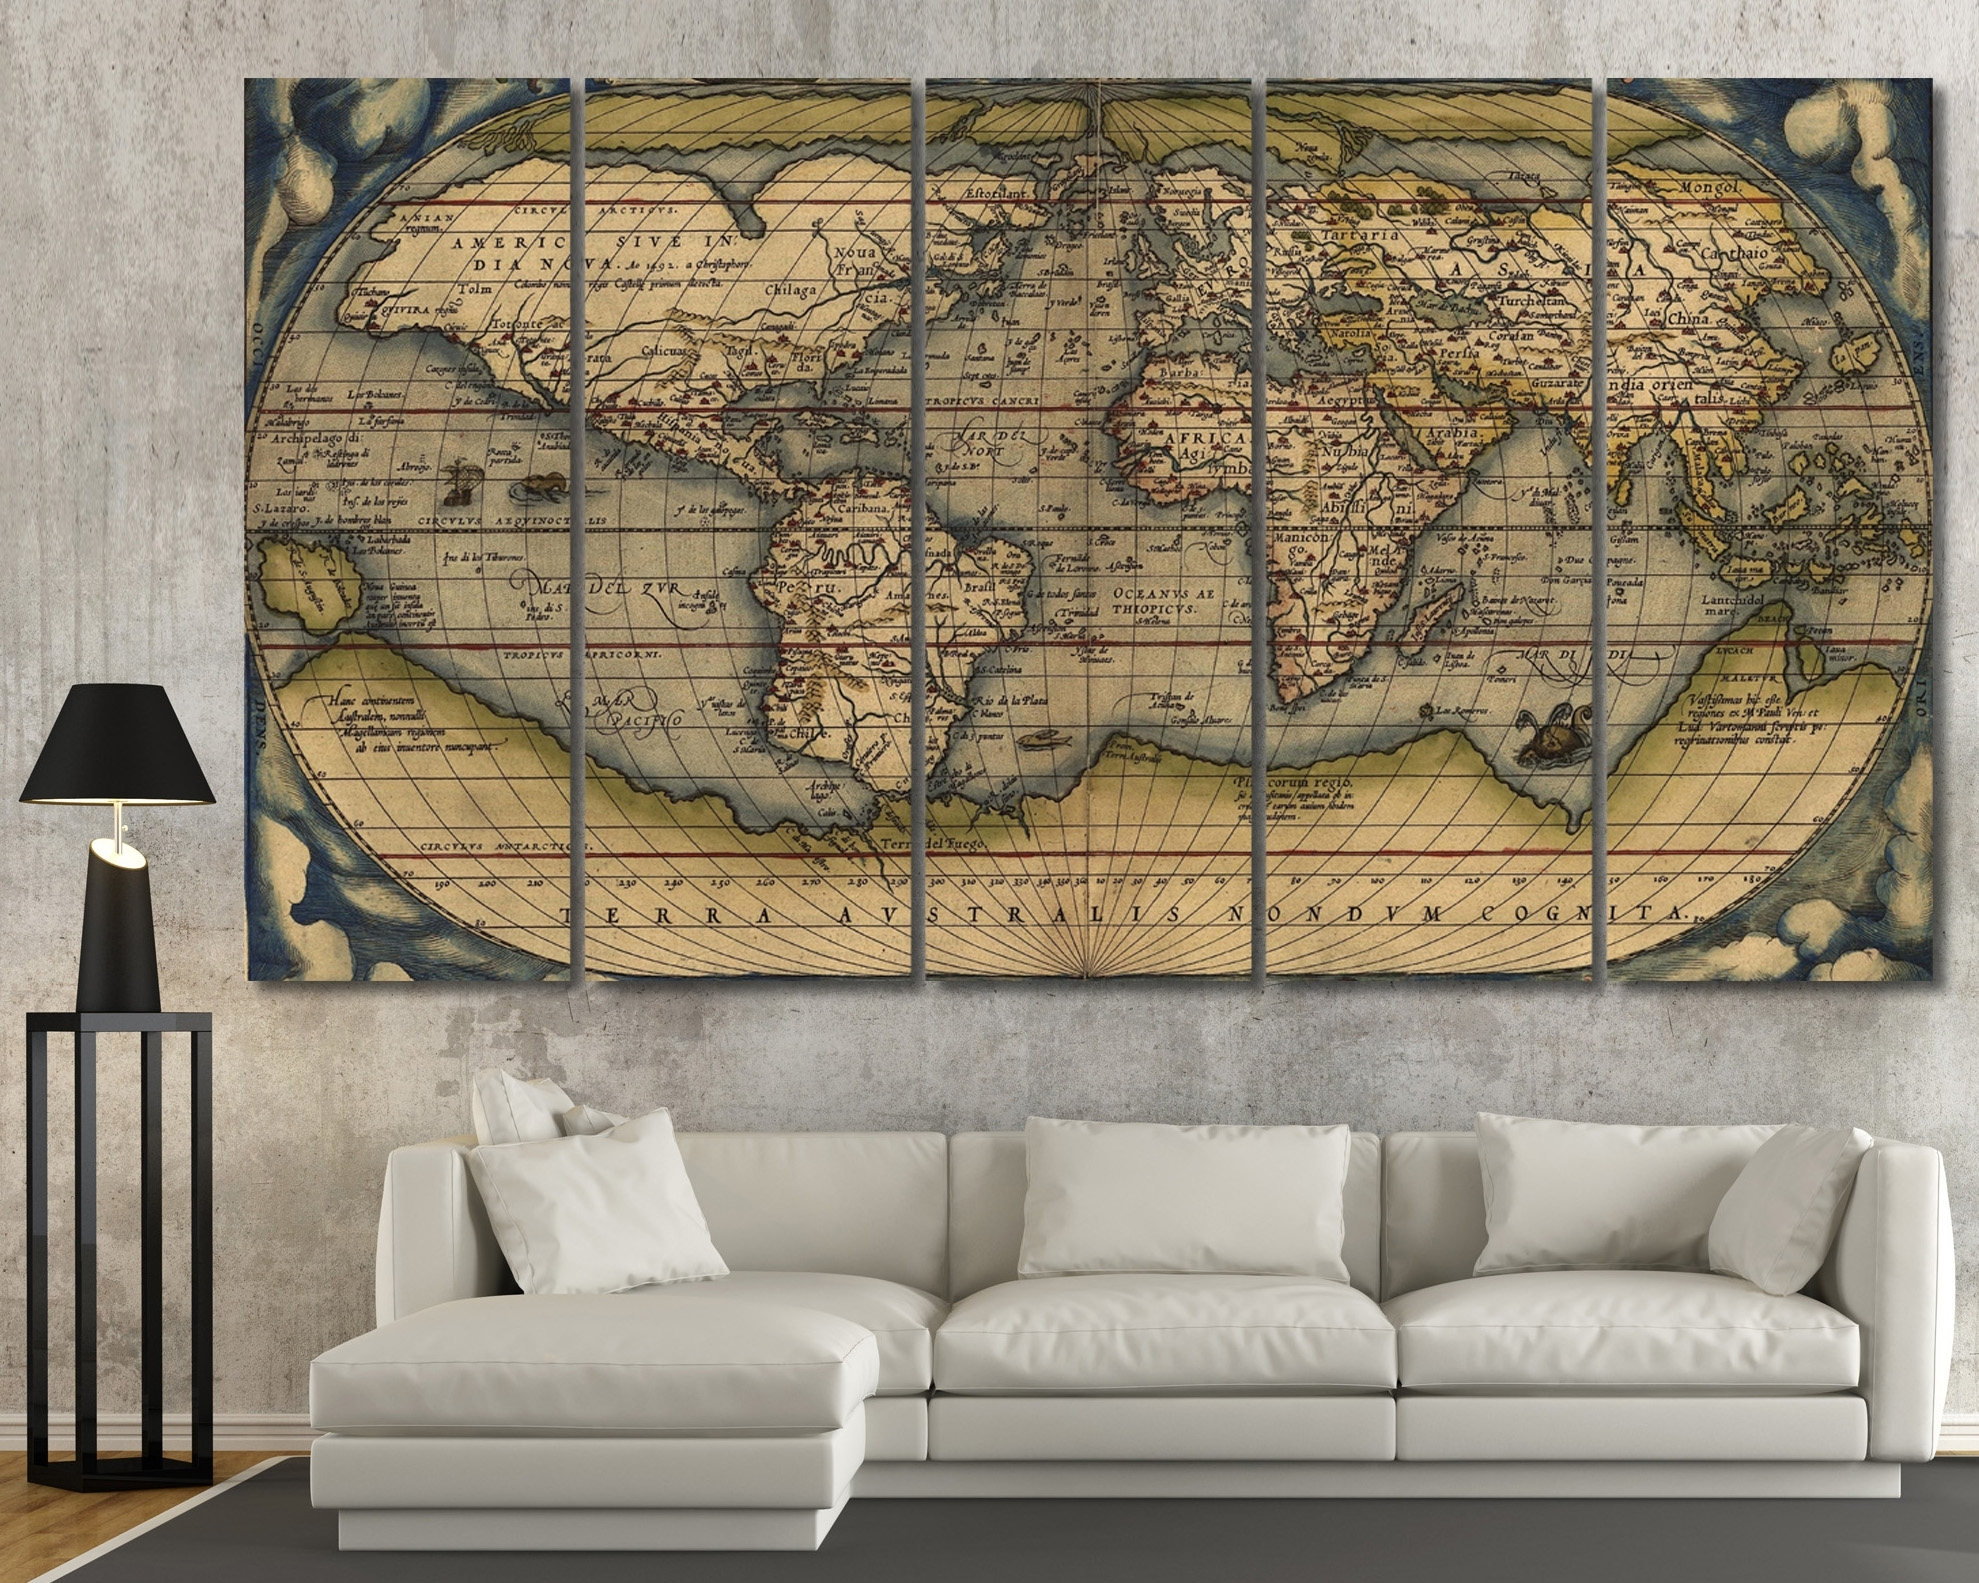 Large Vintage Wall Art Old World Map At Texelprintart In Newest Vintage Wall Art (Gallery 1 of 15)